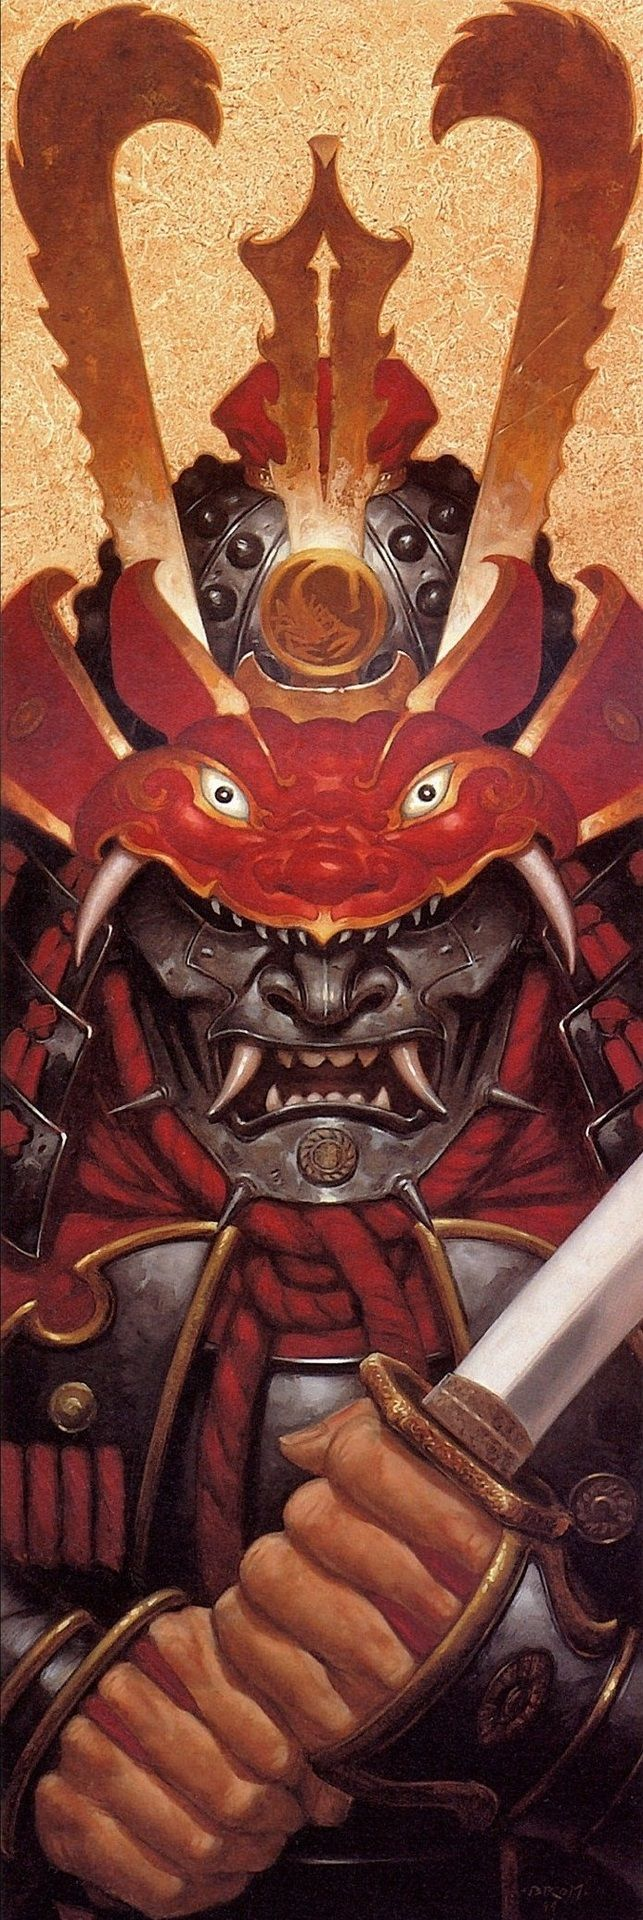 The Samurai of Tyrakawa are an elite band of warriors who give up their old lives to become part of an ancient order of warriors. They stick to their own Code of Honor and are often found among the courts of Lords as advisors or bodyguards.